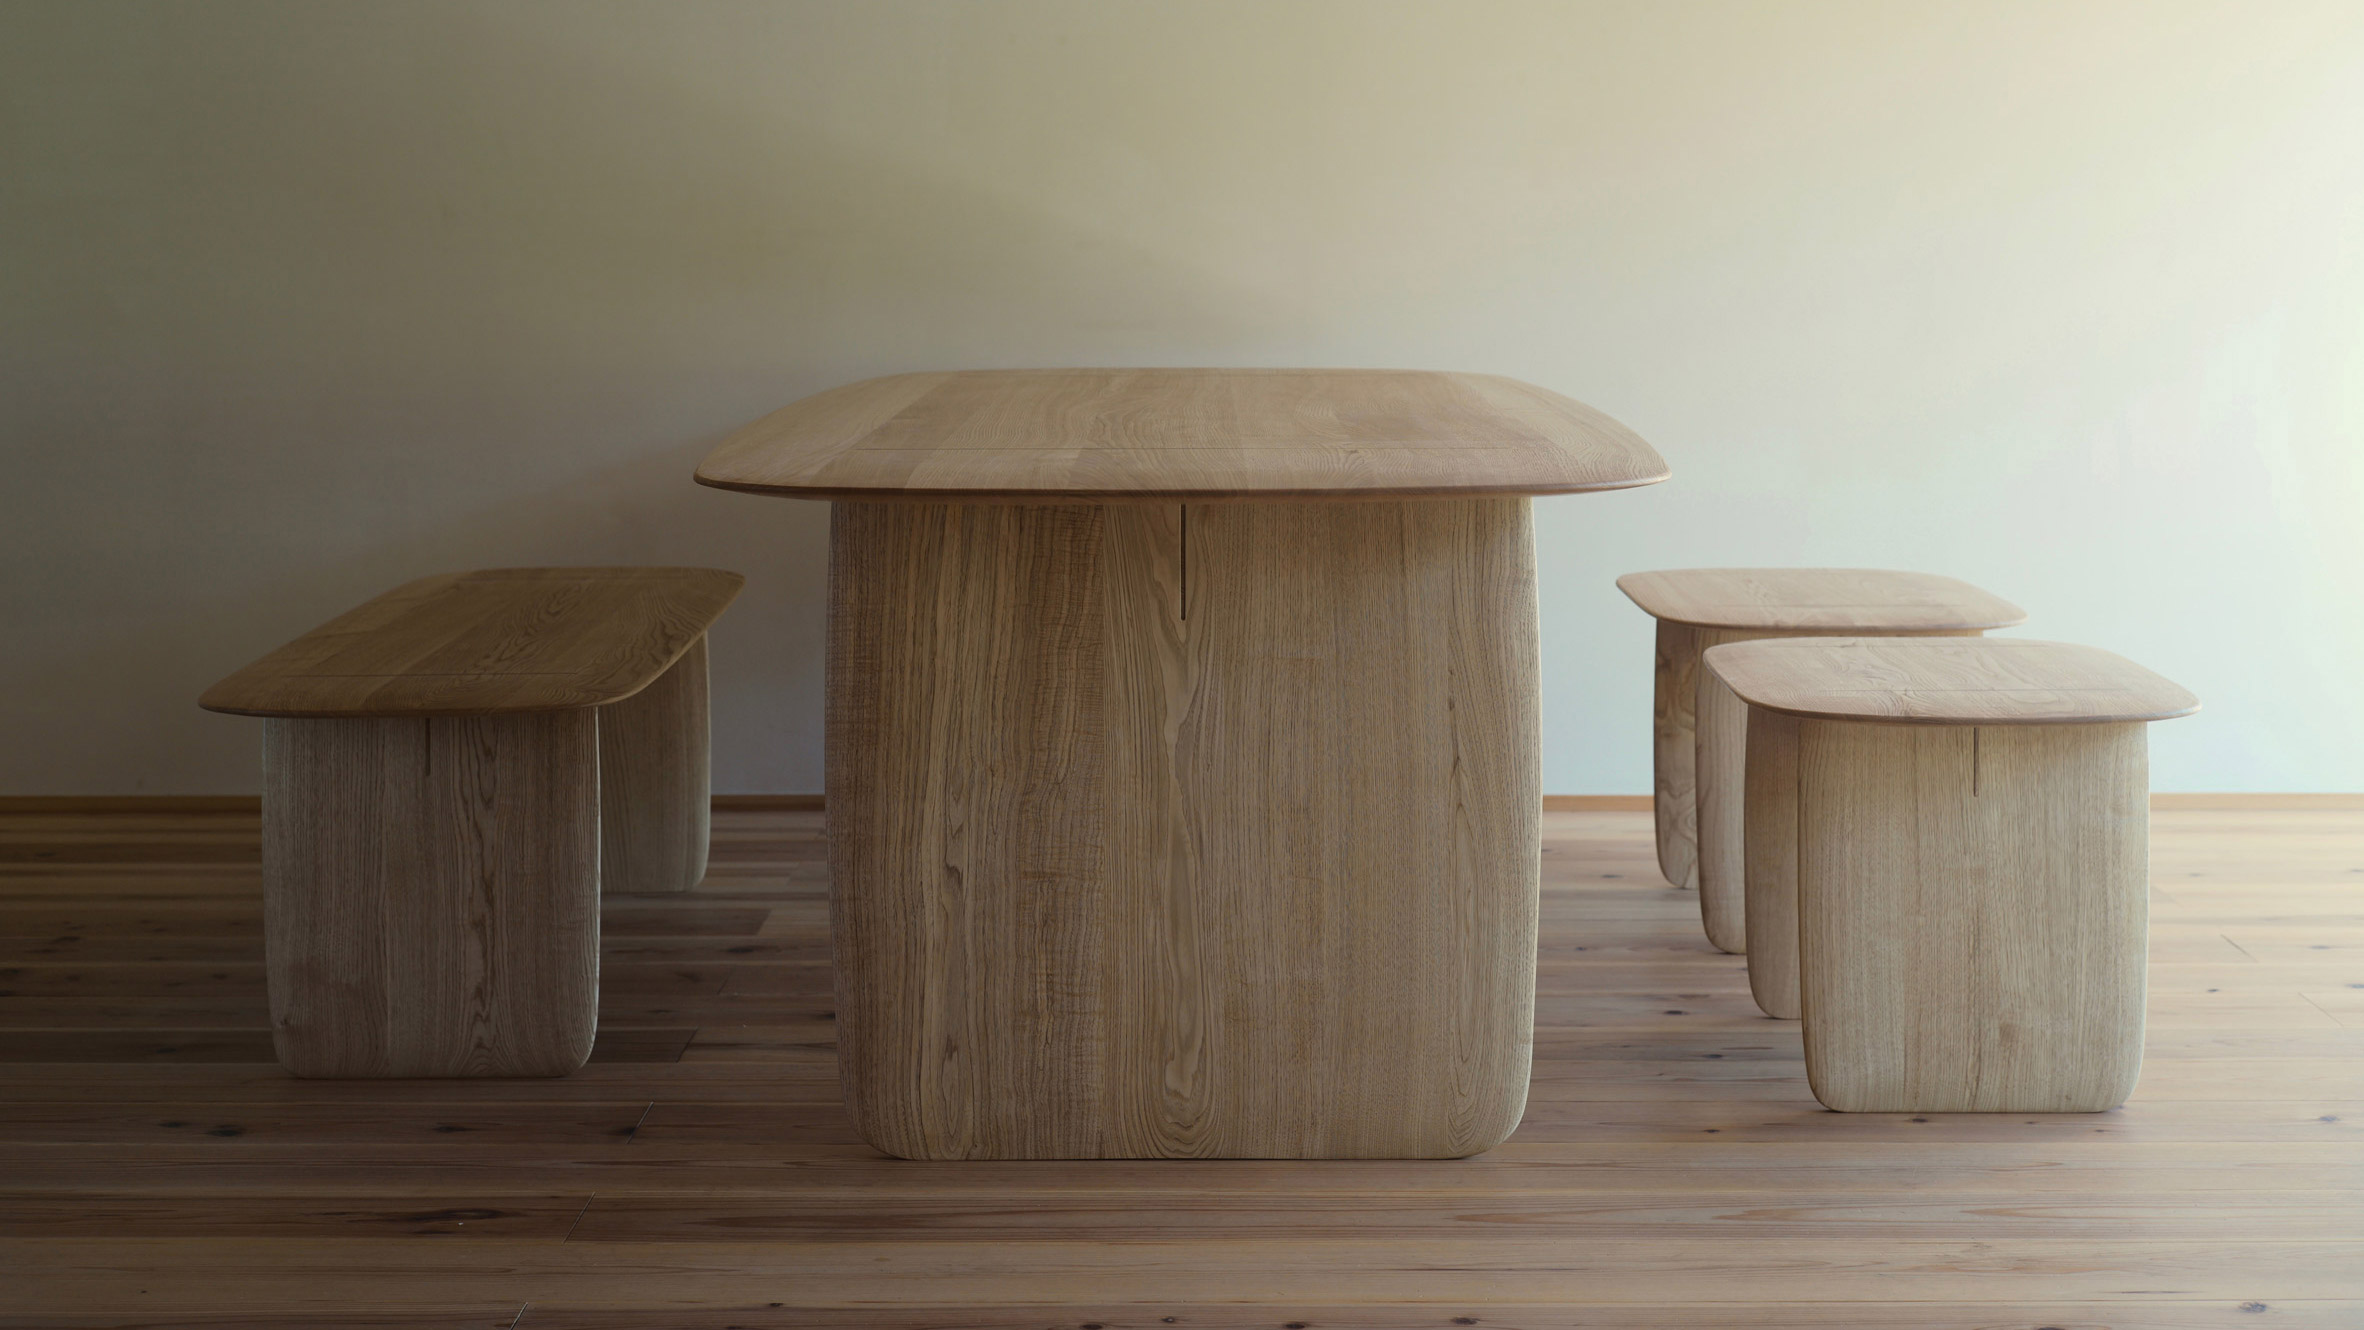 Claesson Koivisto Rune collaborates with master woodworker on Hand furniture